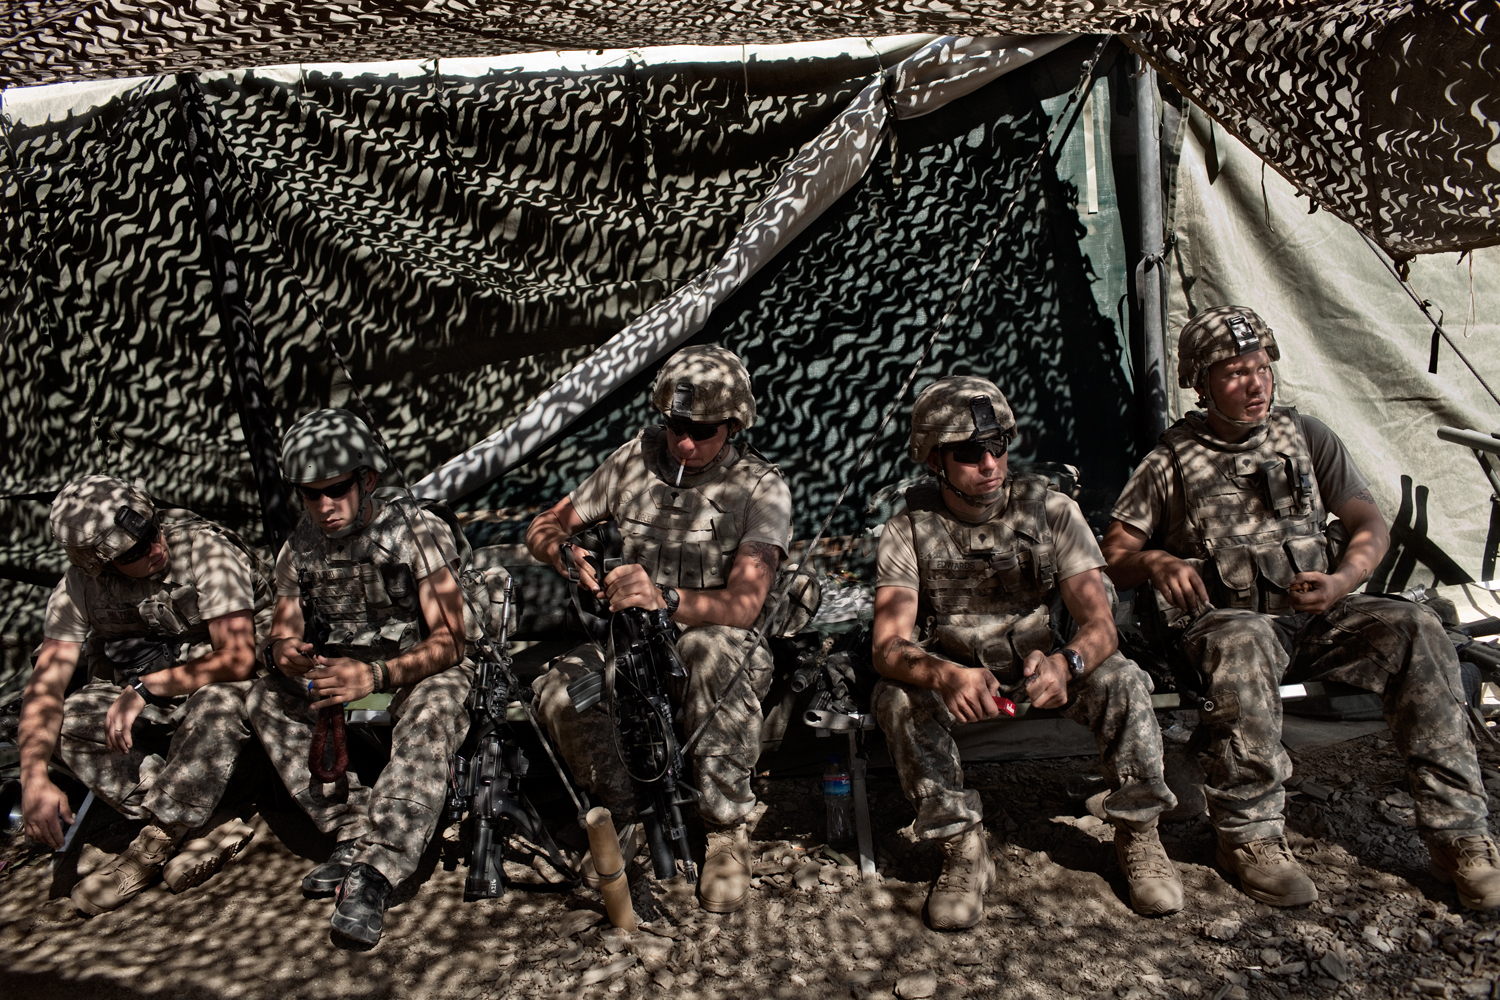 U.S. Army soldiers stand down at Combat Operations Post Tangi after it came under rocket attack in the Tangi Valley, Wardak Province, Afghanistan.